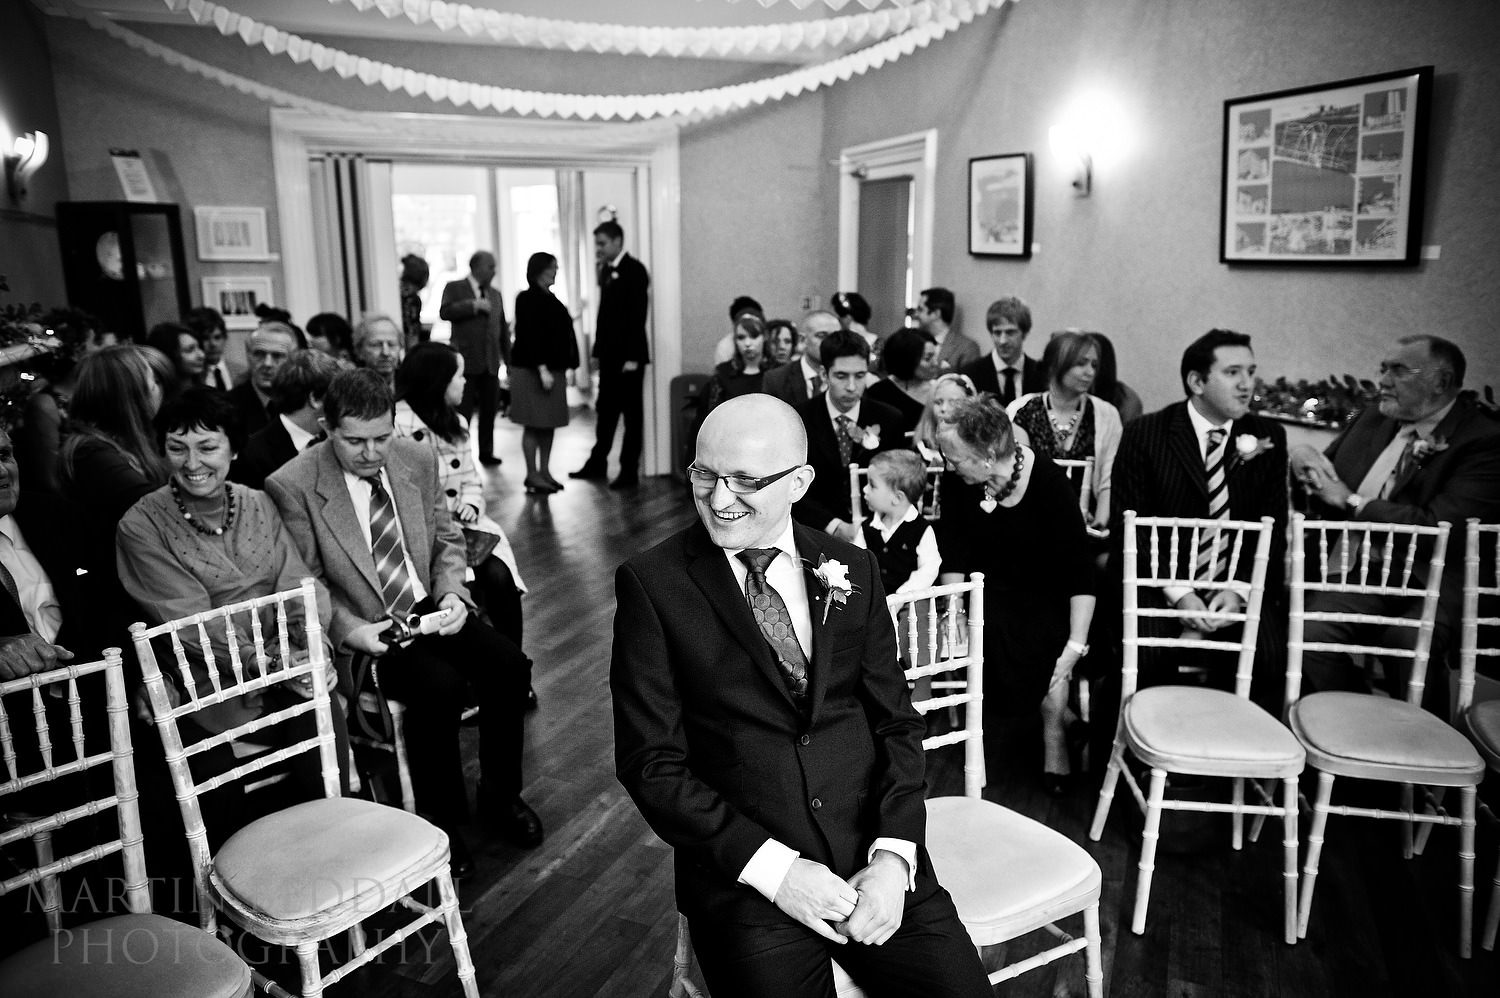 Groom waits in the ceremony room at the Claremont hotel in Hove